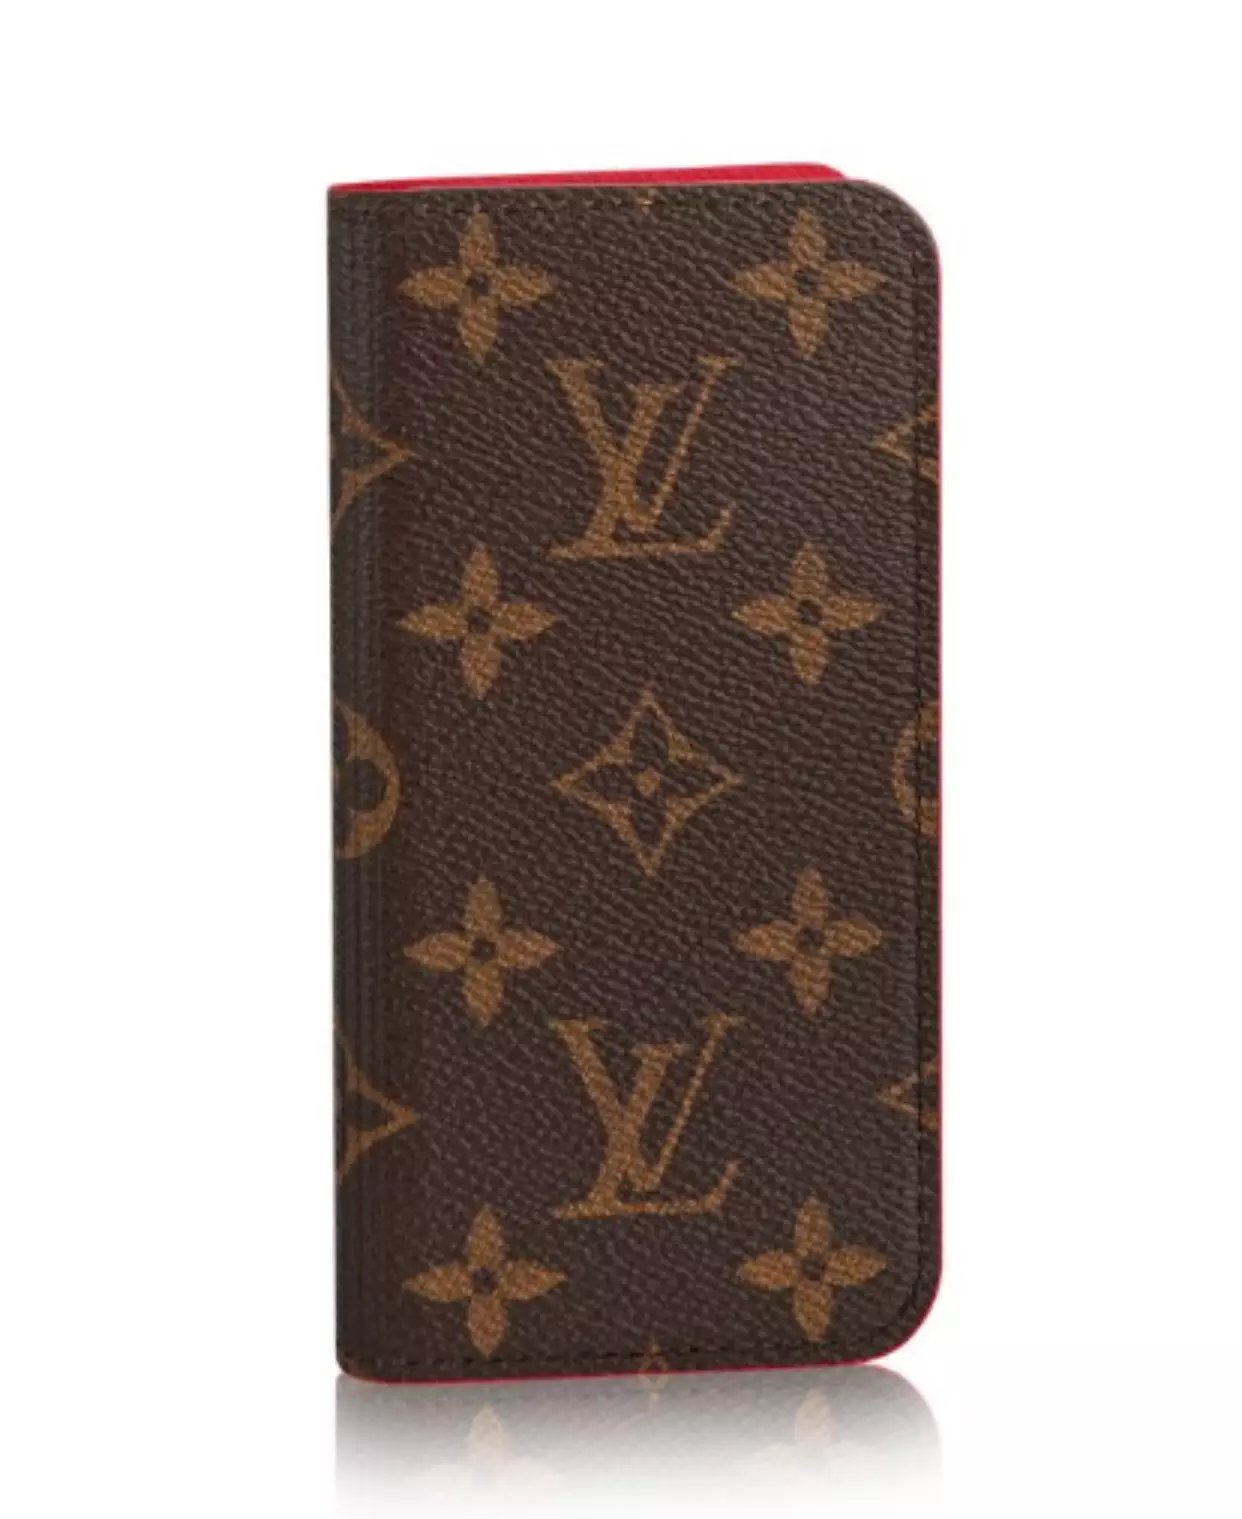 beste iphone hülle iphone hülle eigenes foto Louis Vuitton iphone6s plus hülle hülle handy cover iphone hülle 6s  handyhülle s6s s6s handyhülle htc schutzhülle 6slbst gestalten